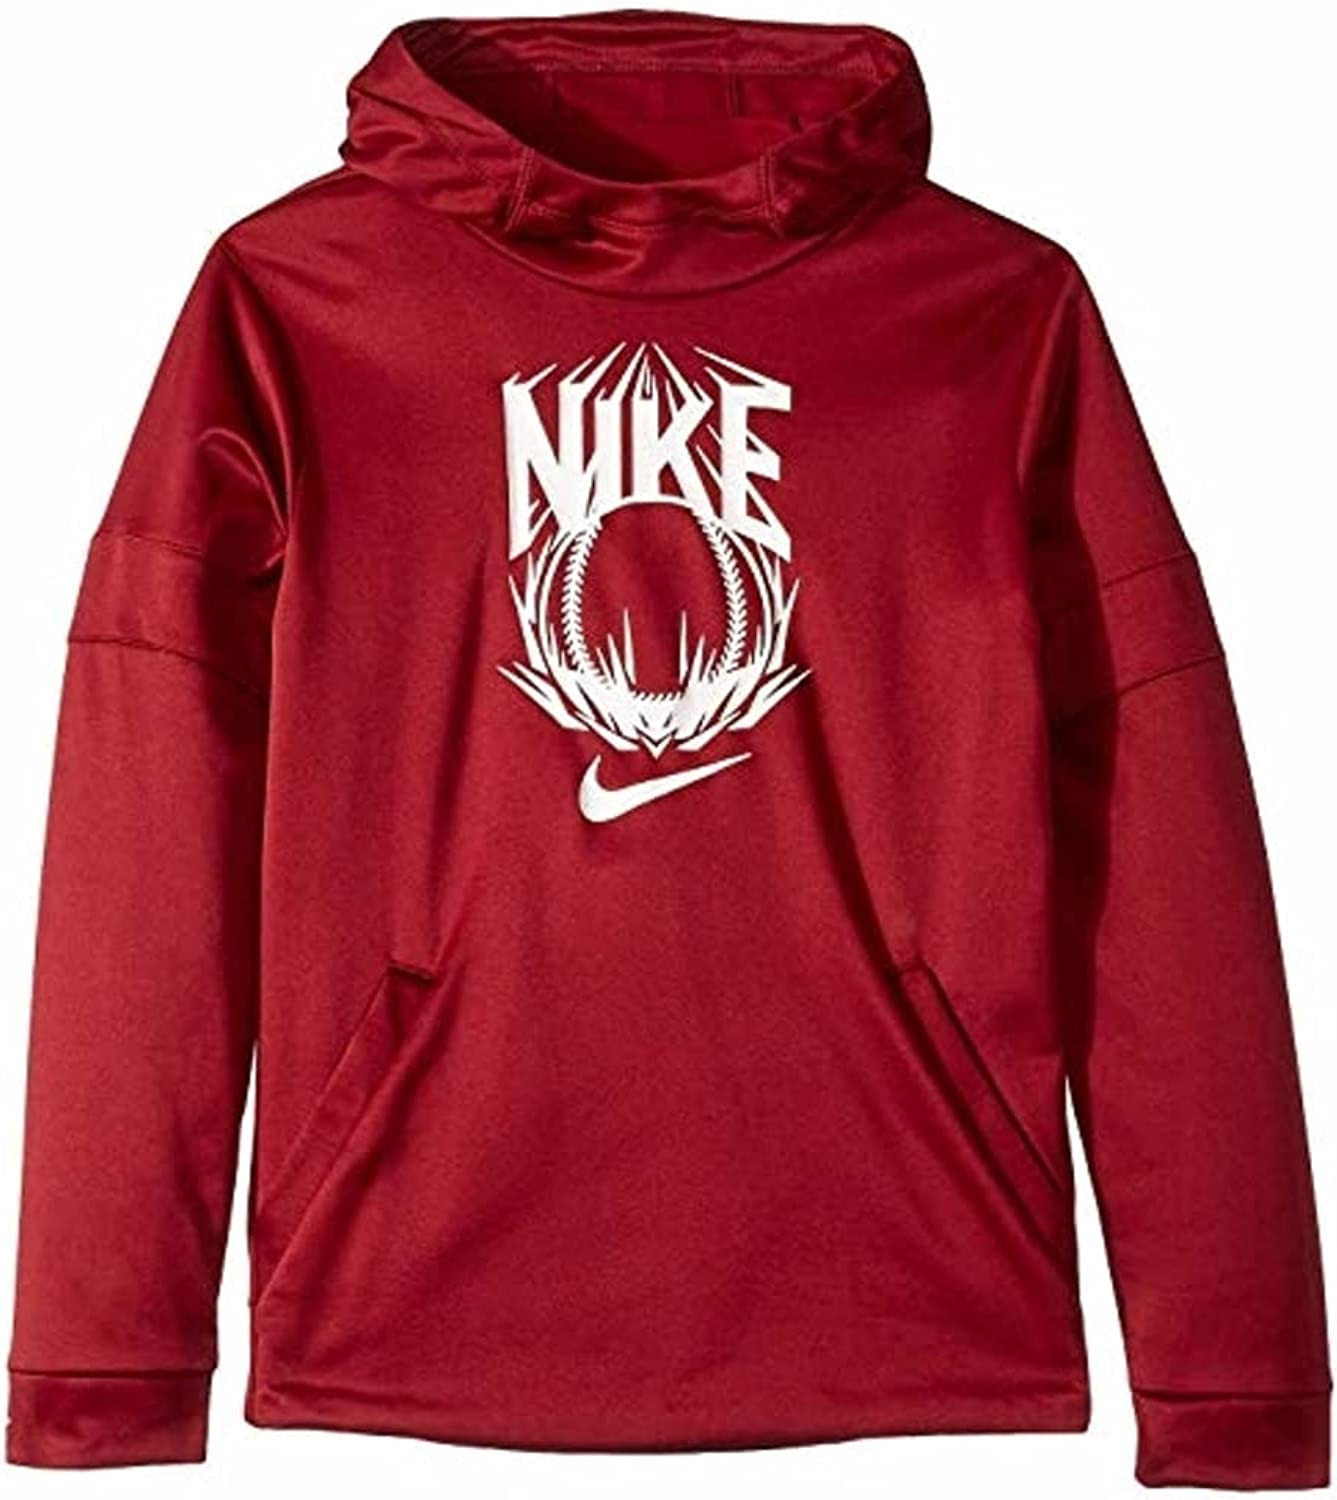 Nike Kids Big-Boys Therma Dri-Fit Sports Pullover Hoodie - Size Small - Burgundy/White